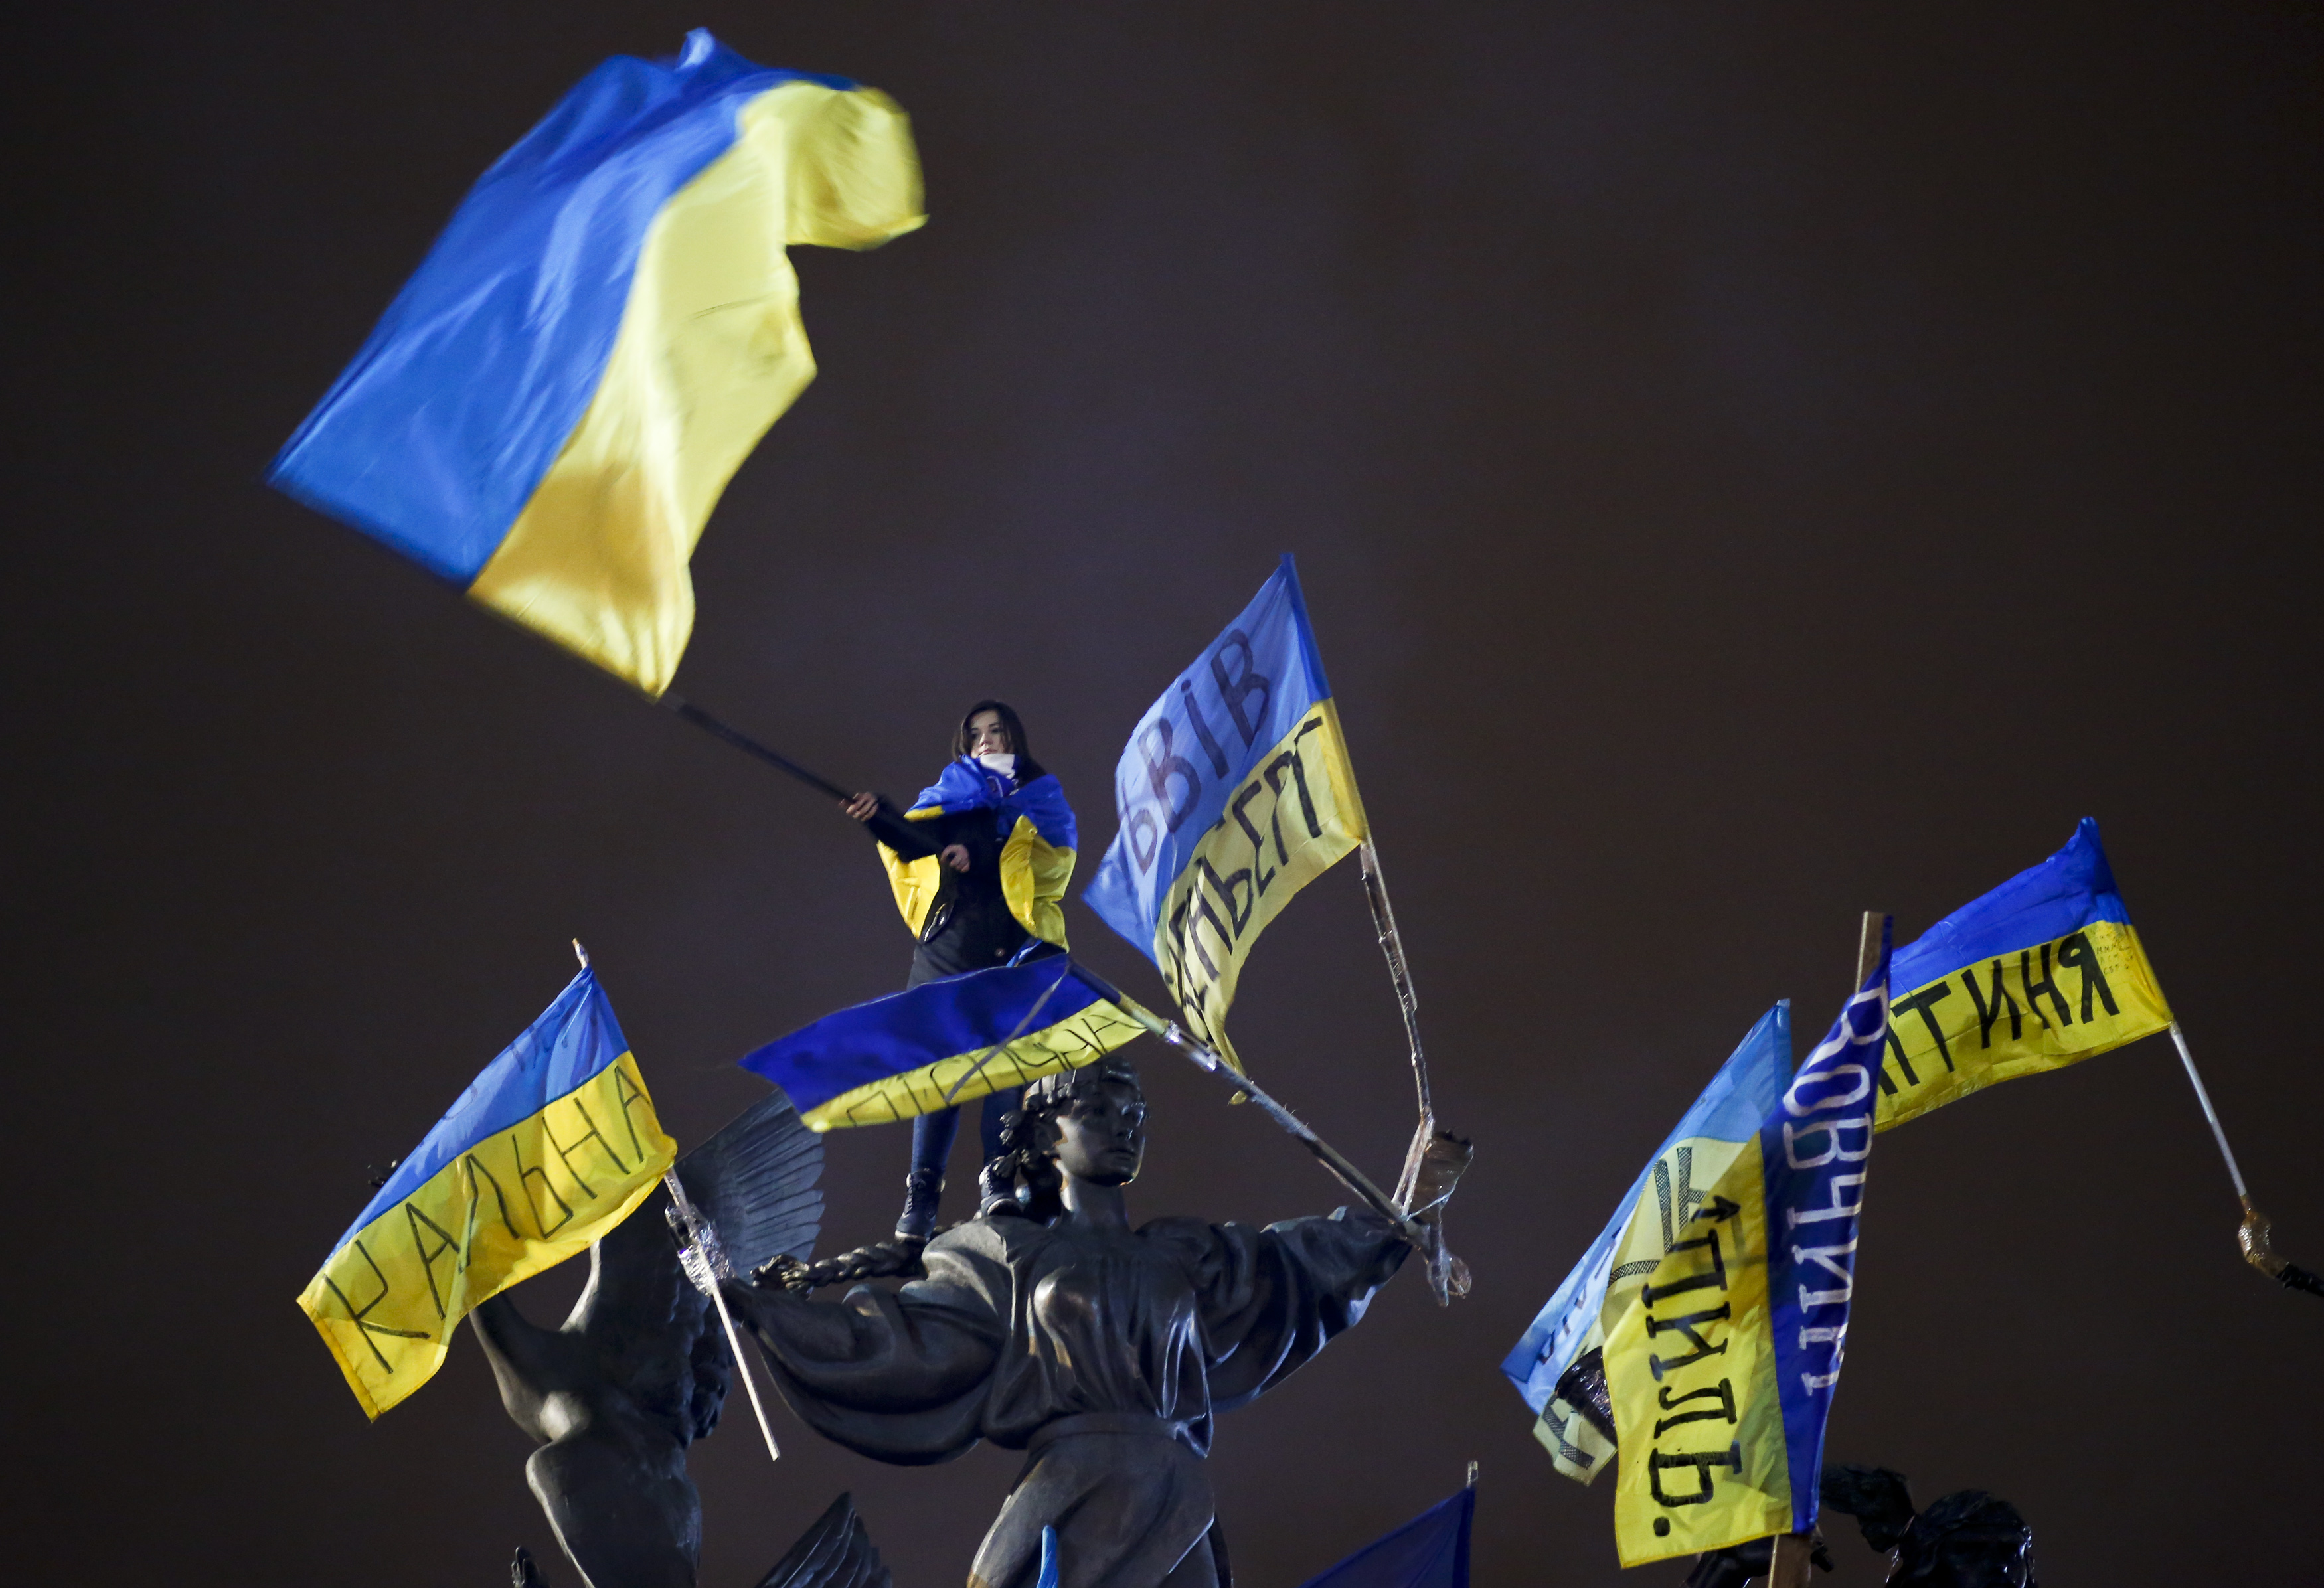 Ukrainian nation in the abyss of despair